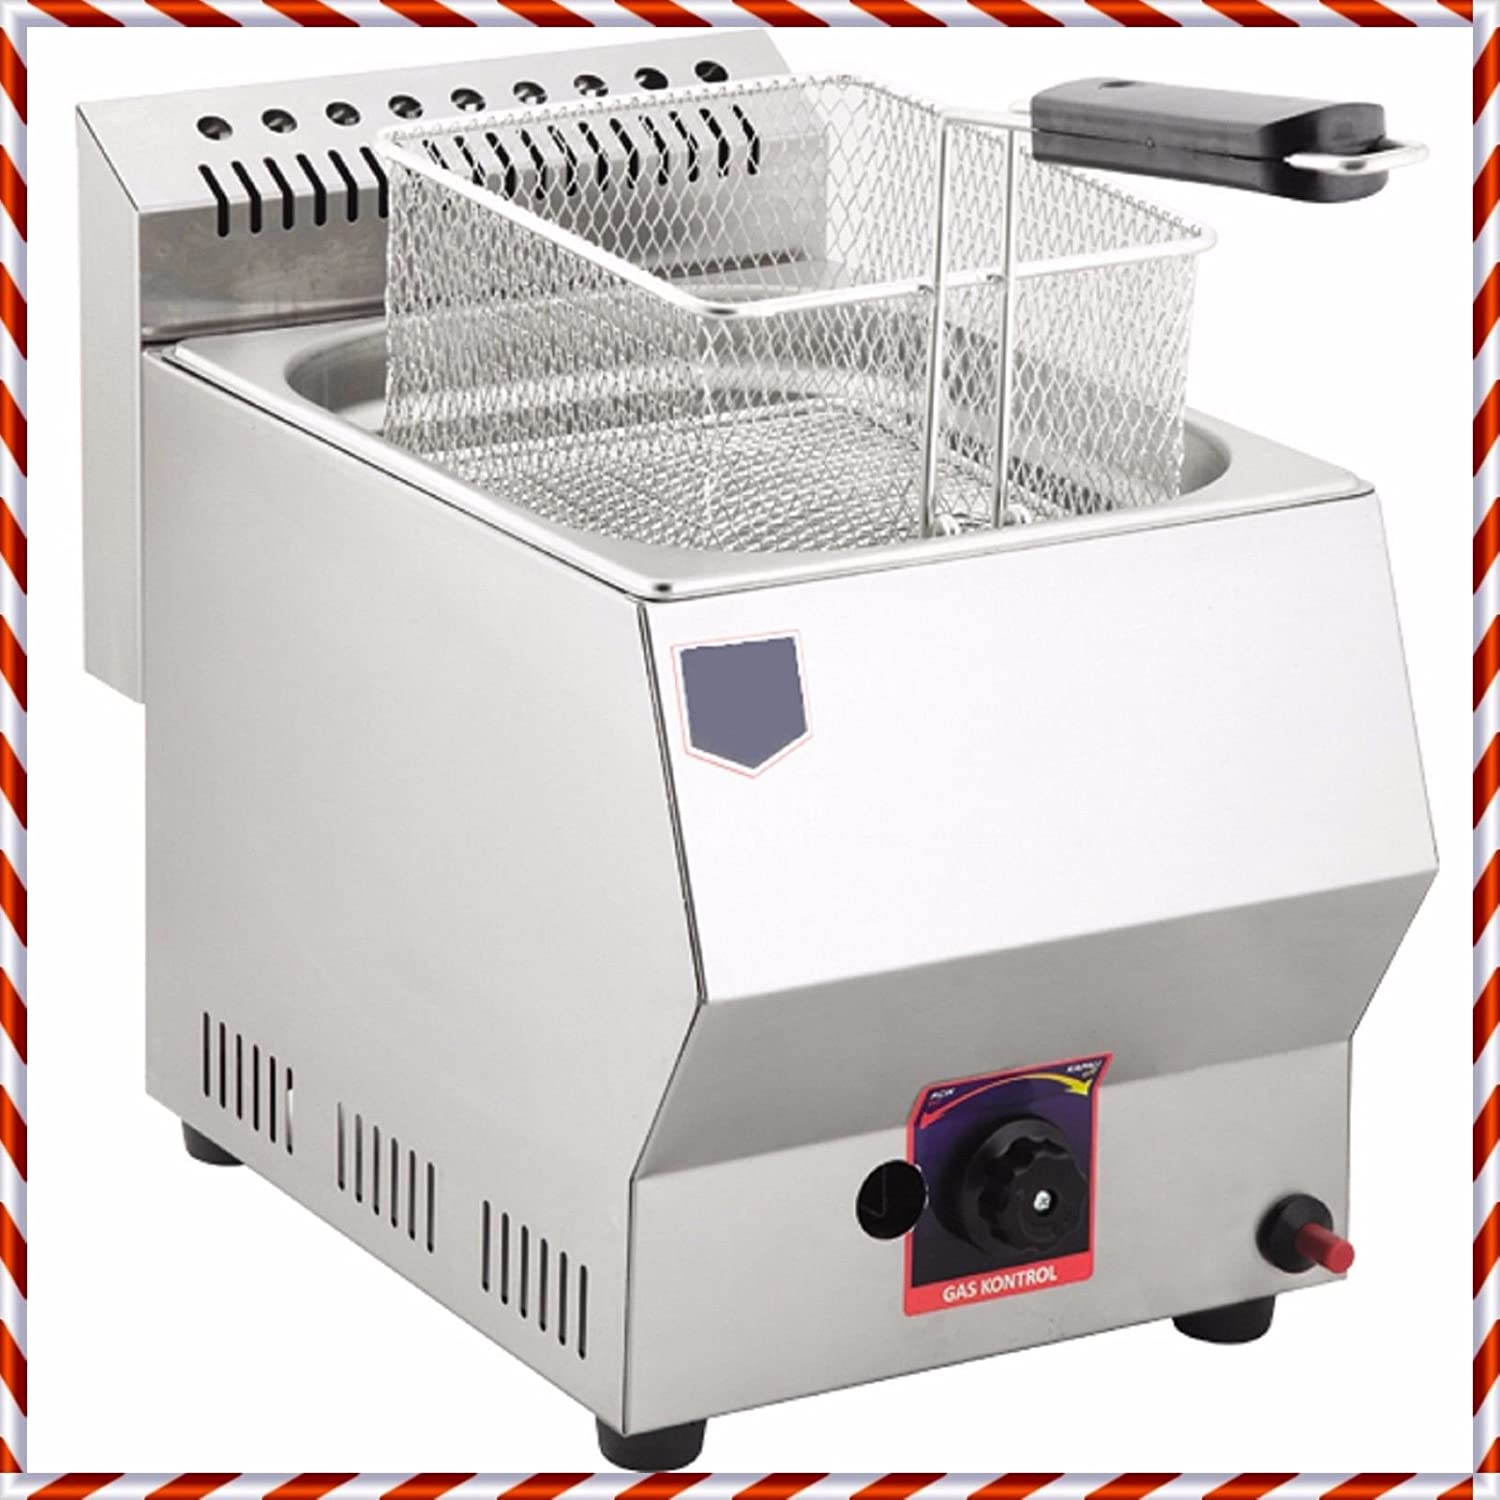 W:10.43'', L:20.87'', h:13.78'' PROPANE GAS Commercial industrial Kitchen Restaurant Catering 5 LT. Capacity Stainless Steel Tabletop Countertop Propan LPG Deep Fryer with Basket and Lid INCLUDED